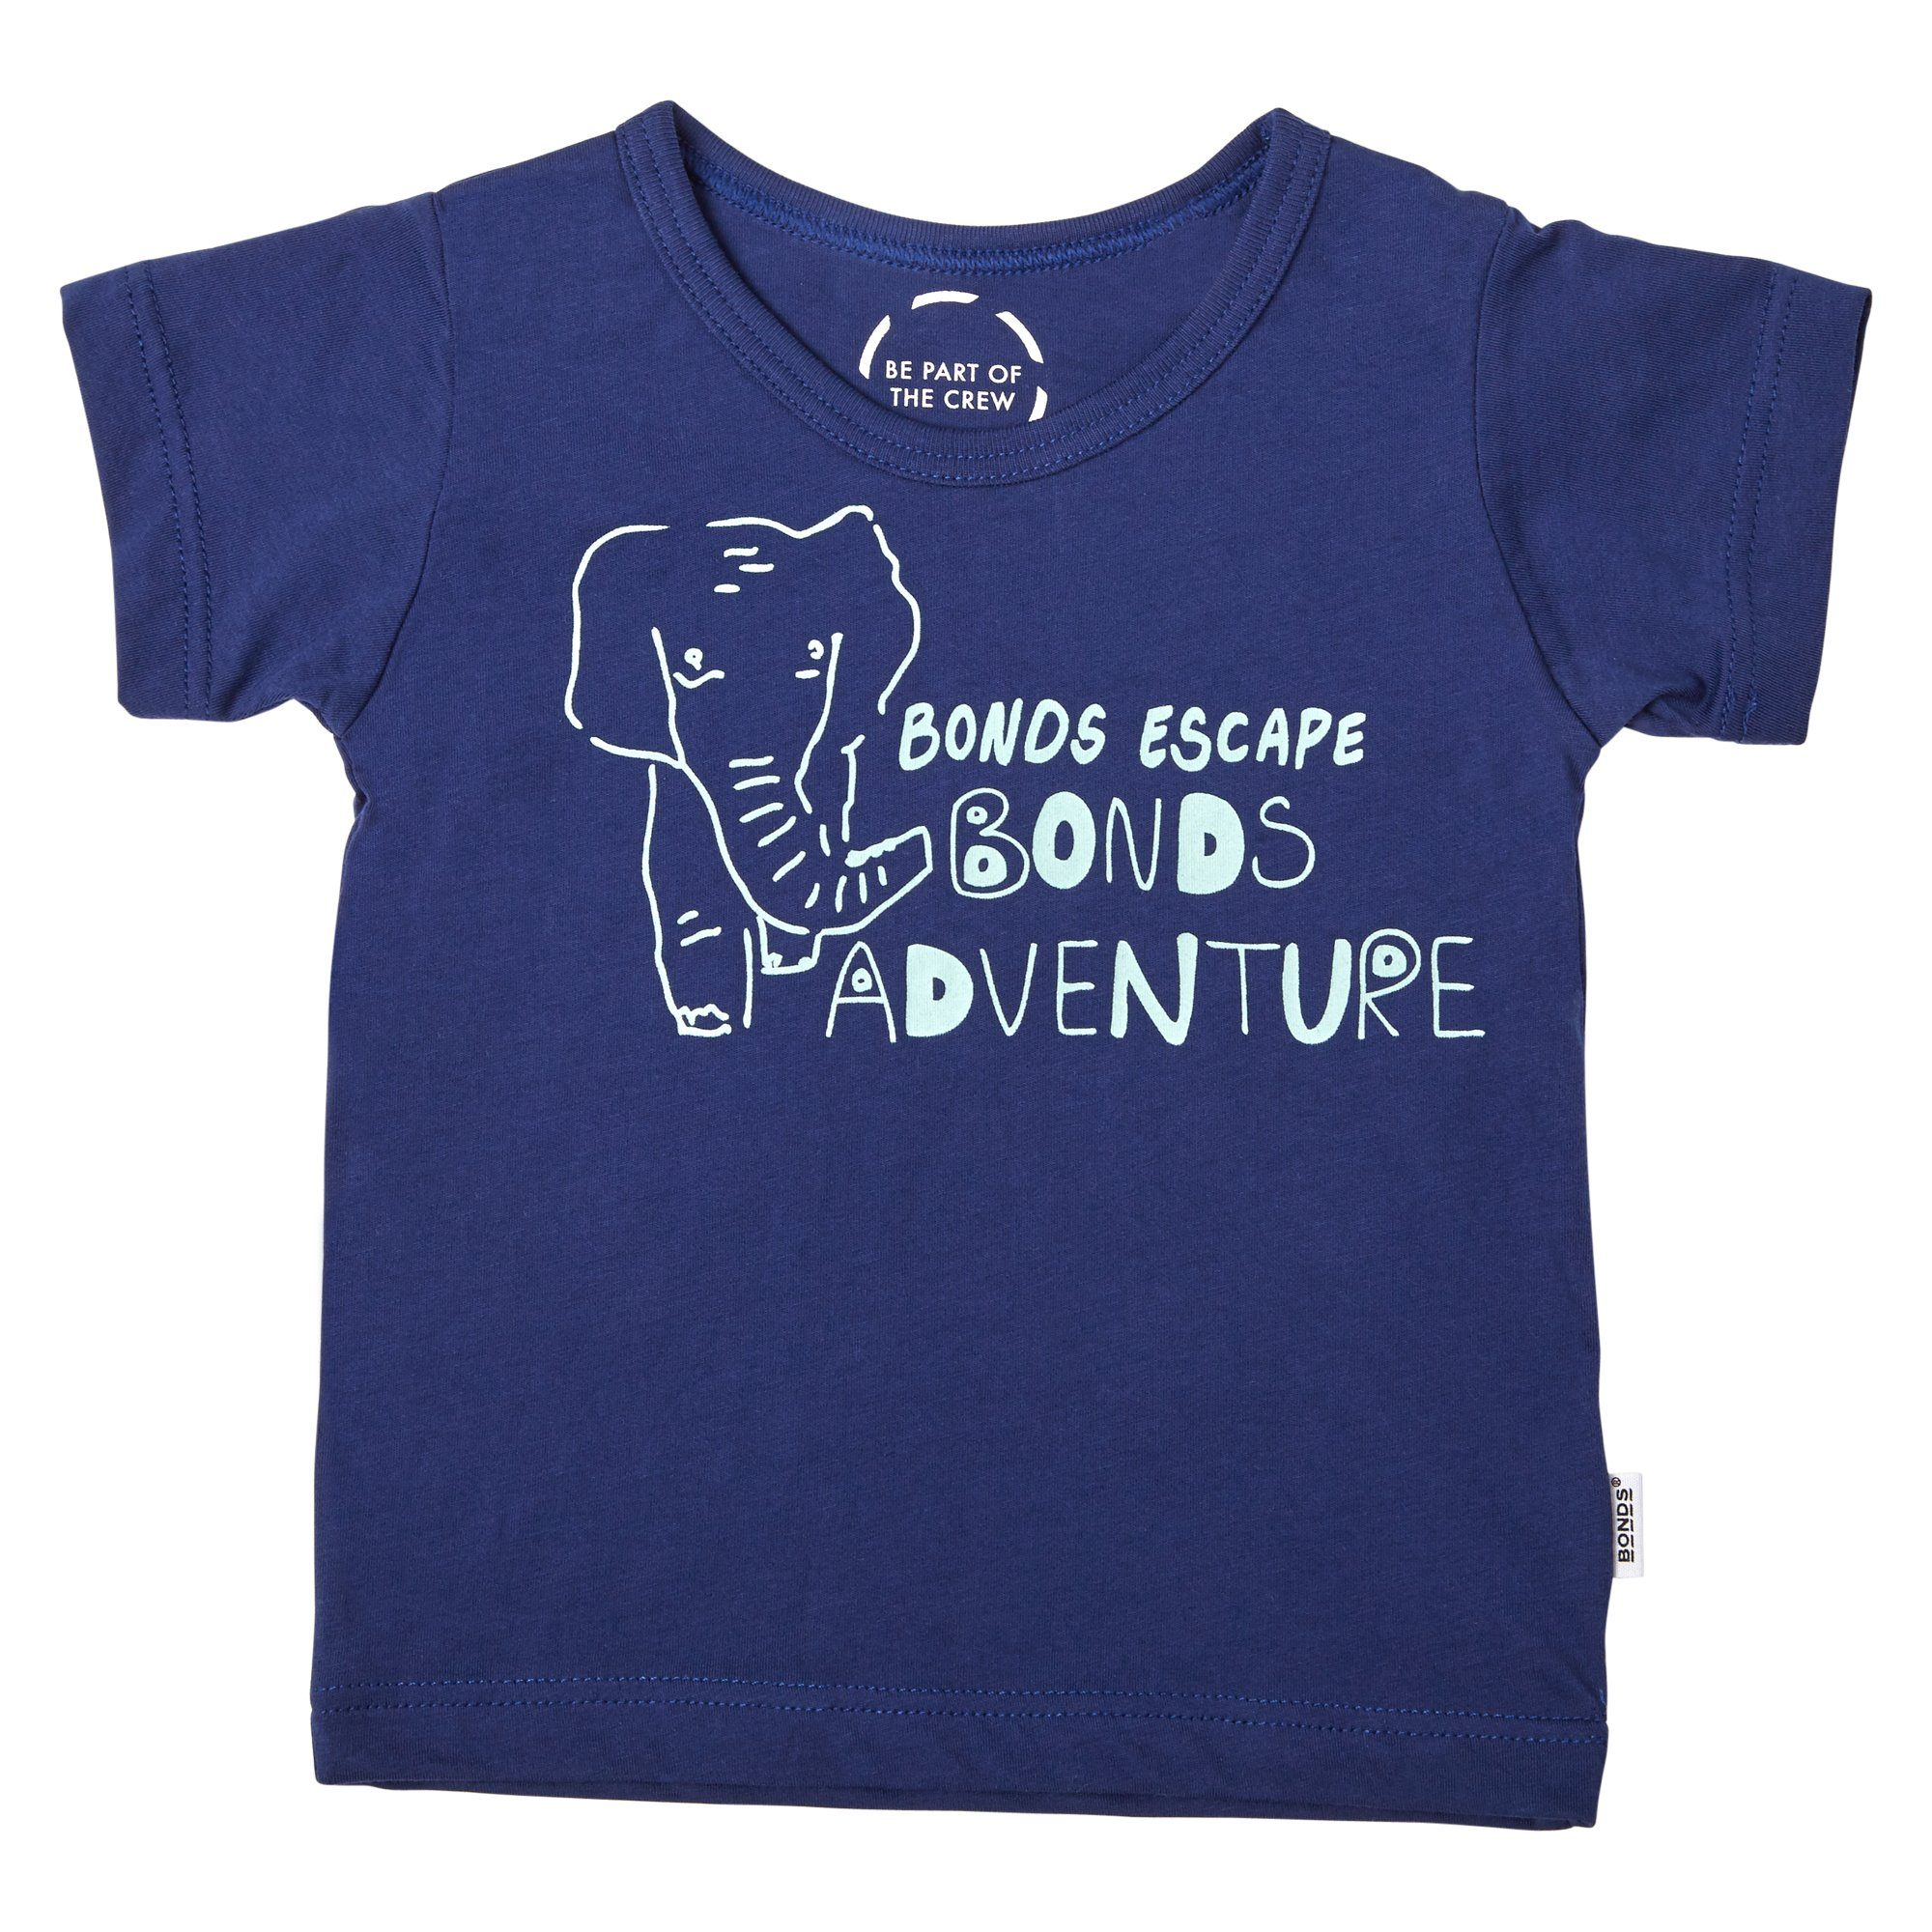 Bonds Baby The Crew Tee Adventure Print Navy Baby Isbister & Co Wholesale